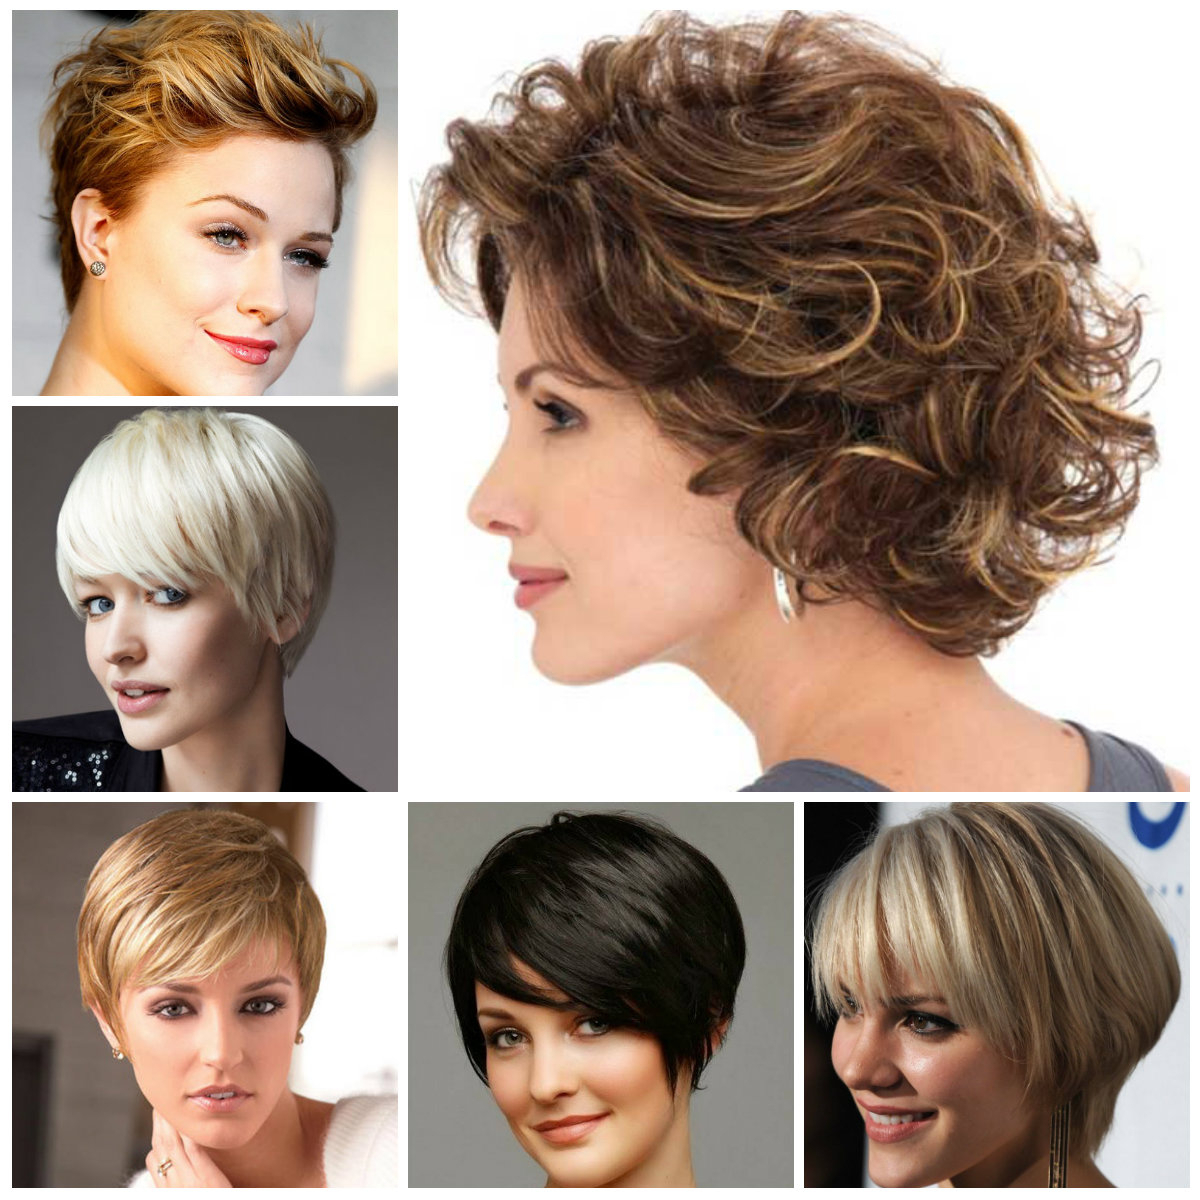 Short Layered Hairstyle Ideas For 2019 | Hairstyles For Women 2019 Inside Pixie Layered Short Haircuts (View 16 of 25)